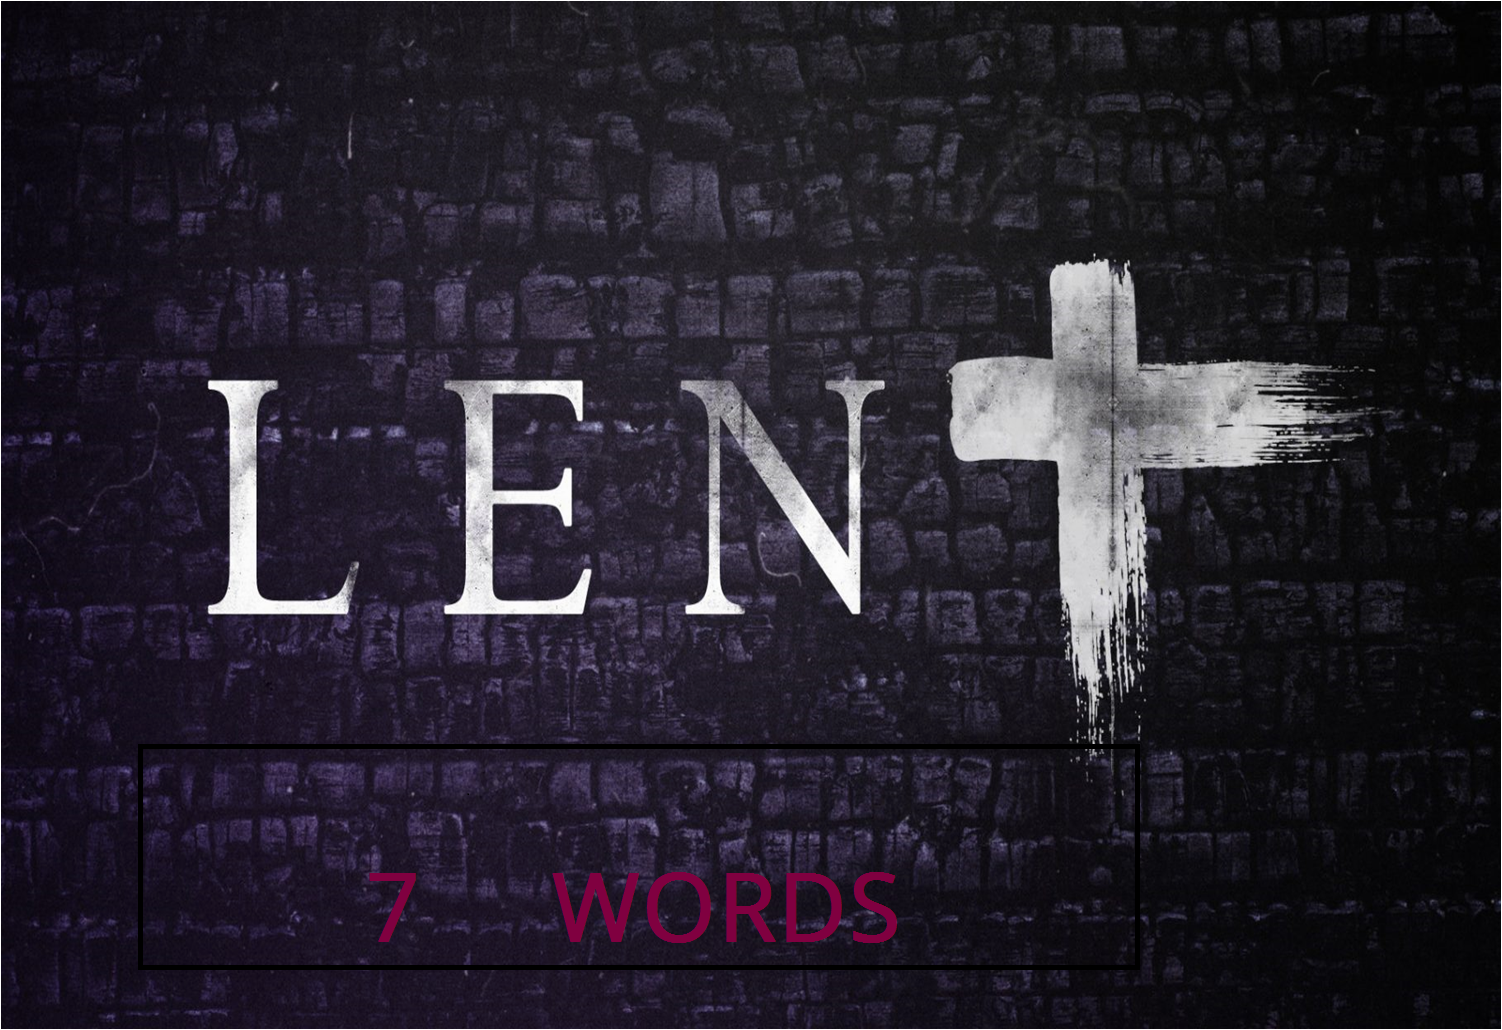 Lent 7 Words.png